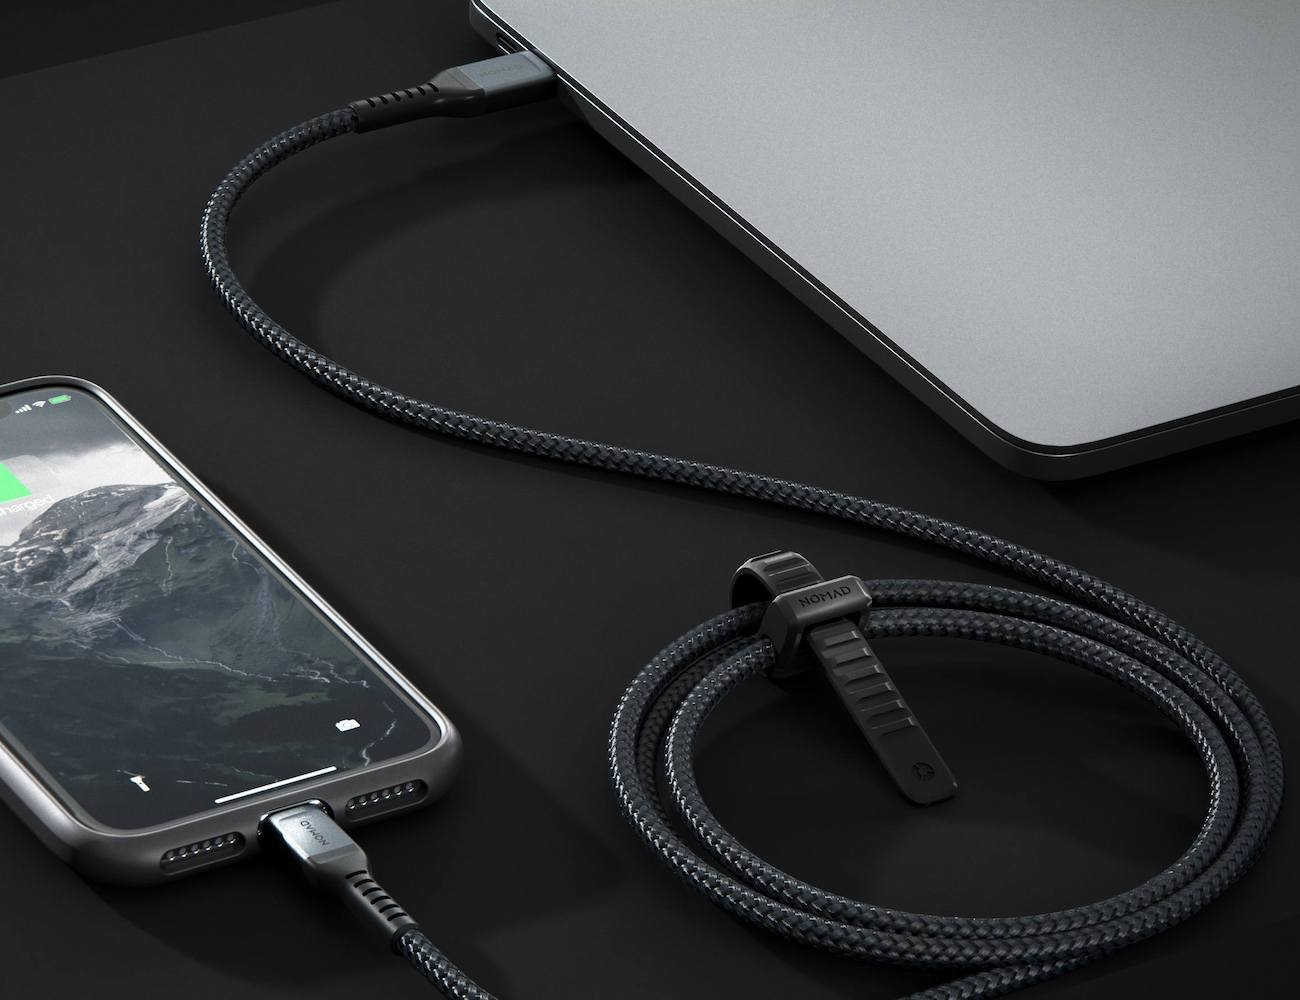 Nomad USB-C to Lightning Cable Kevlar-Reinforced Cord quickly charges your iPhone